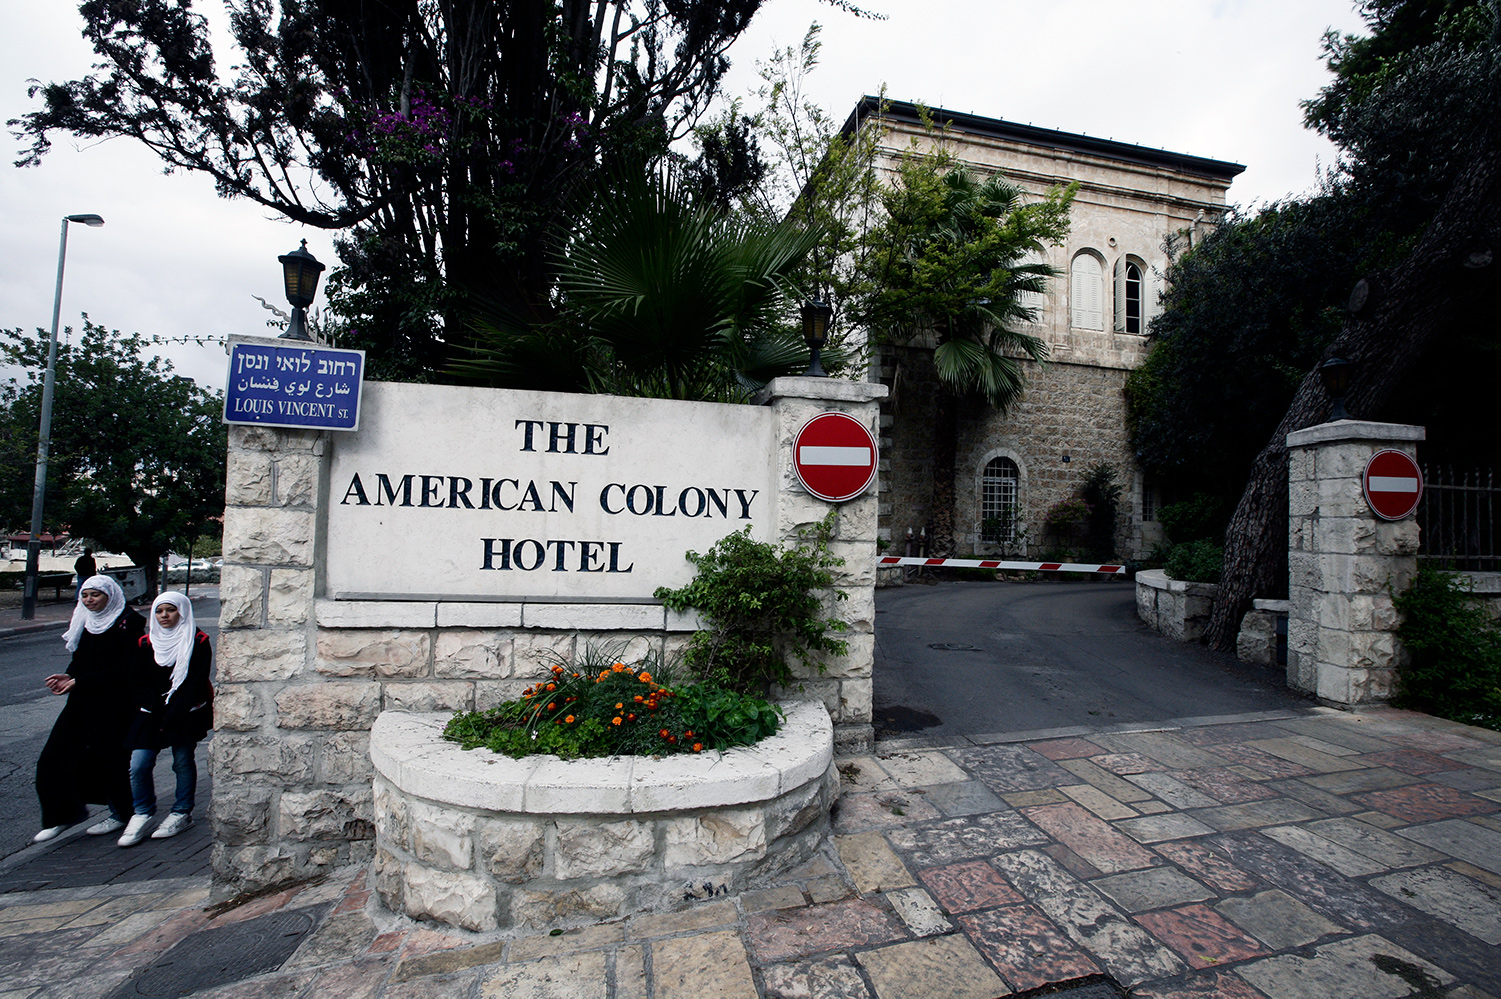 What Did (and Didn't) Happen in Room 16 of the American Colony Hotel